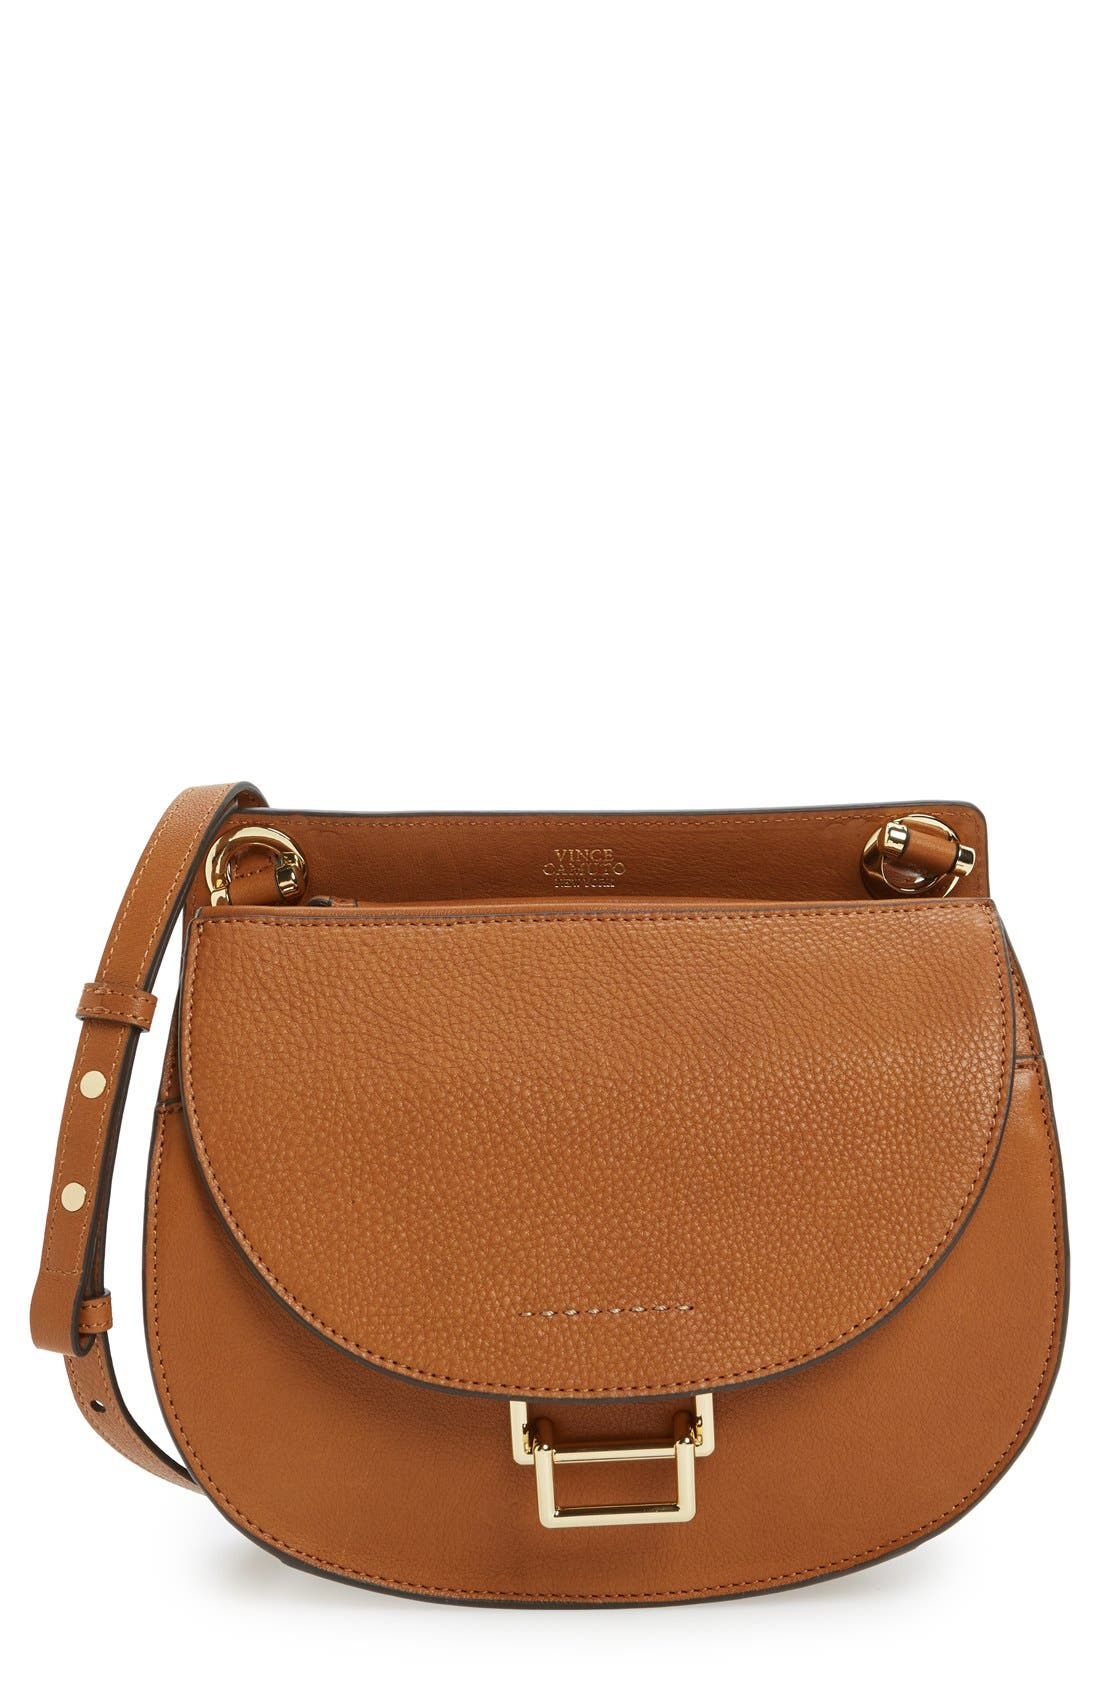 Alternate Image 1 Selected - Vince Camuto 'Livia' Leather Crossbody Bag